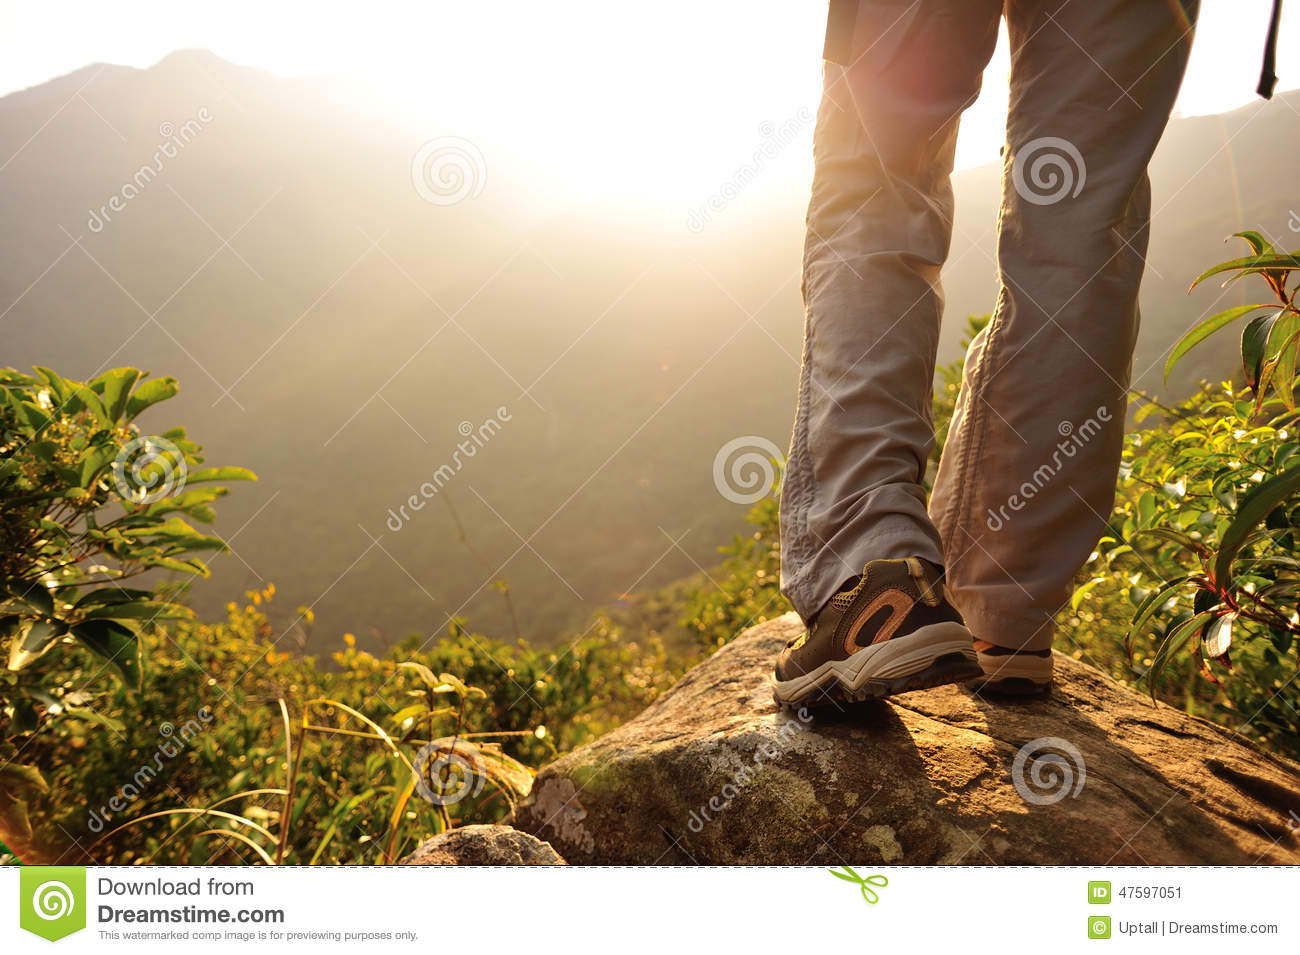 Woman hiker hiking stand on cliff